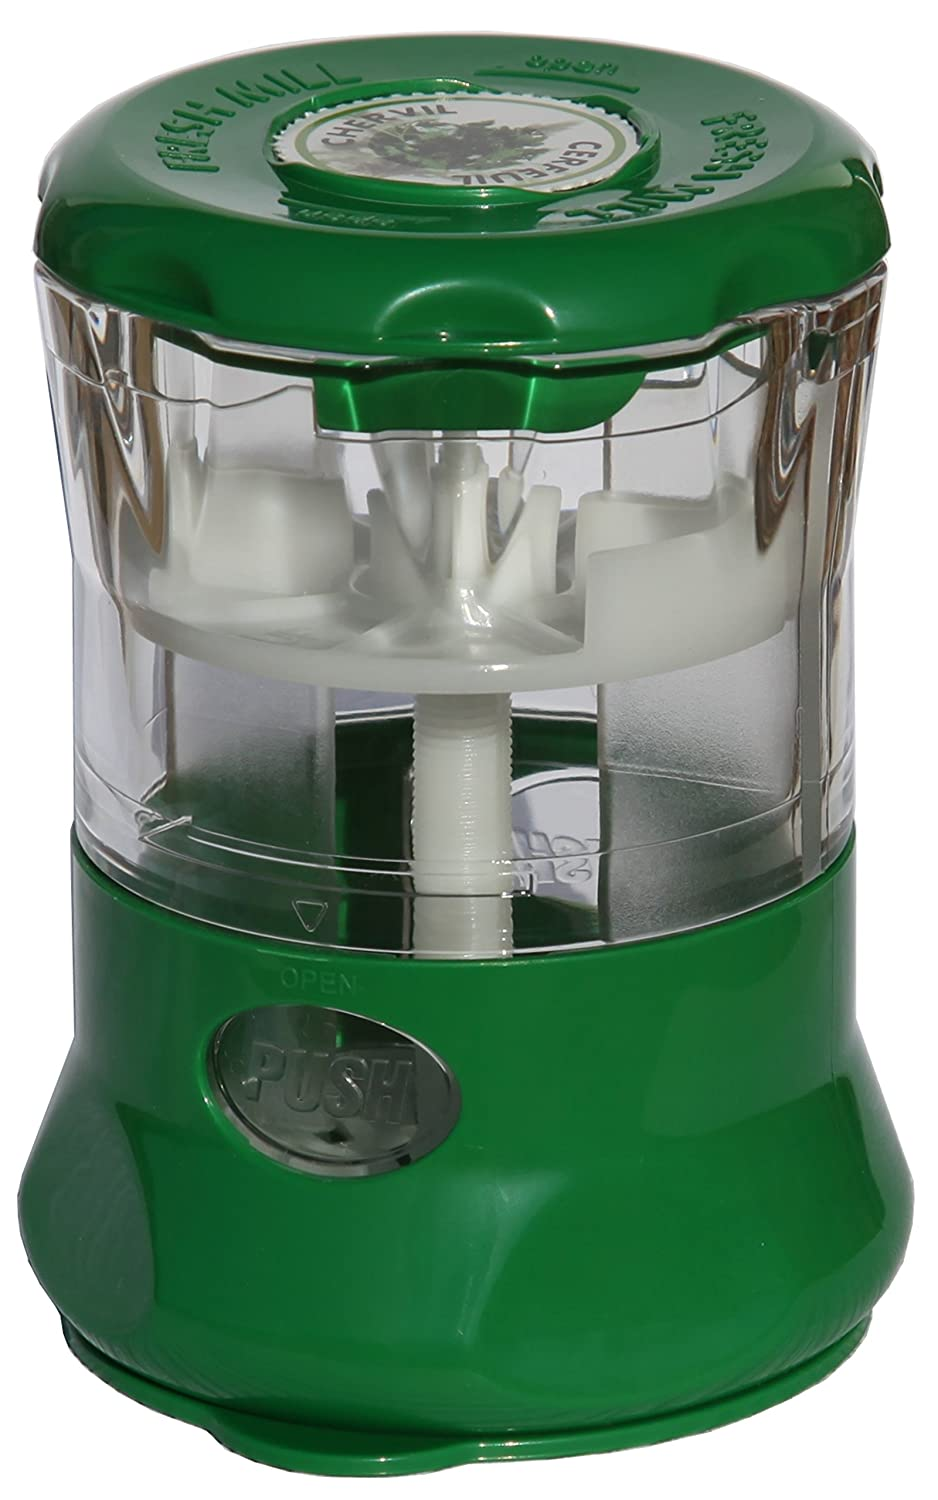 Fresh Mill Herb Storage Canister and Mill, Green HIC Brands that Cook 210